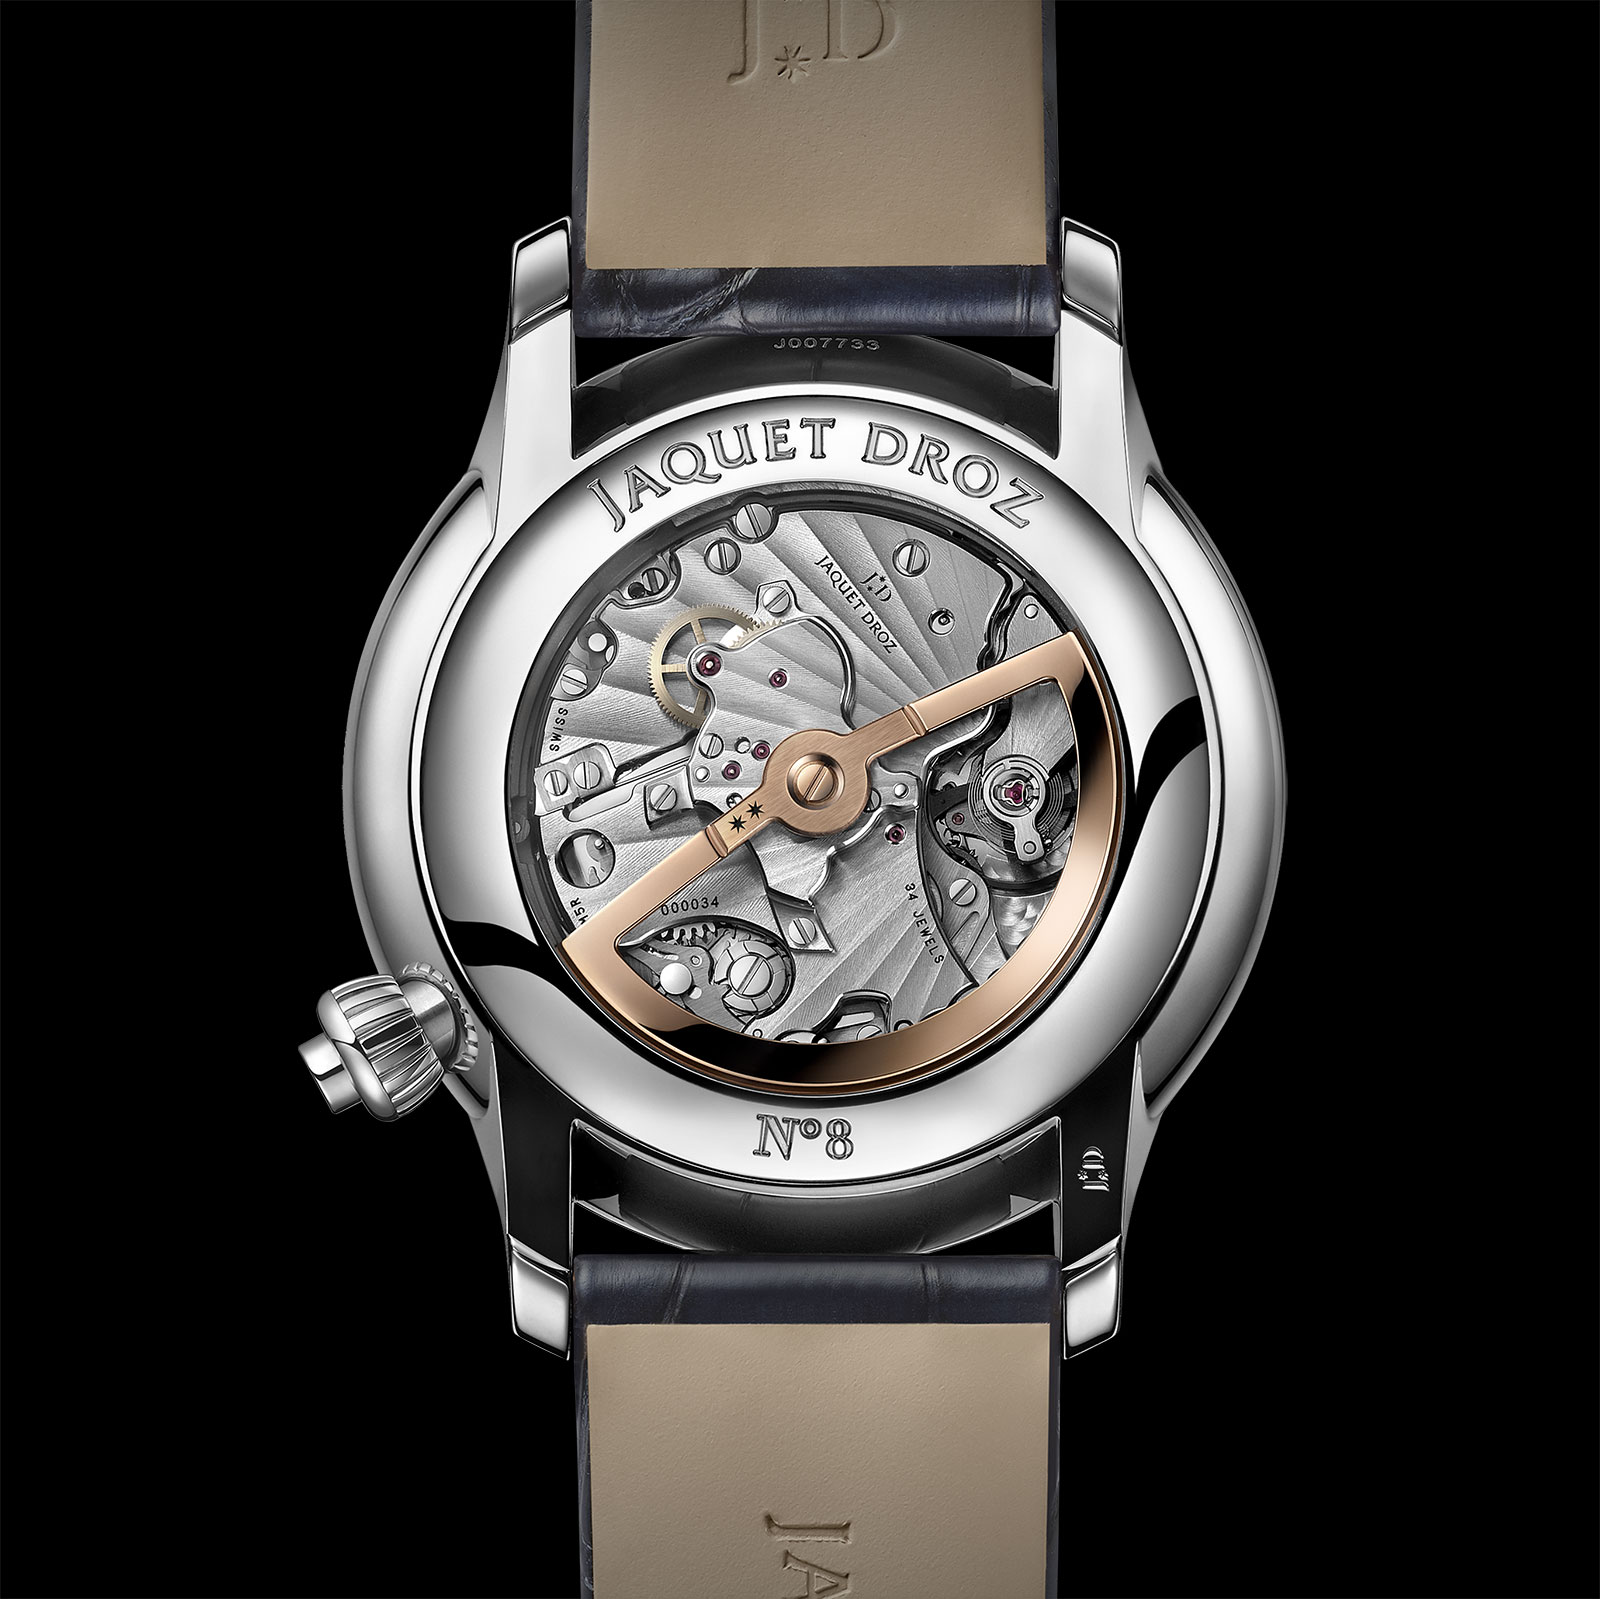 jaquet droz grande seconde chronograph movement